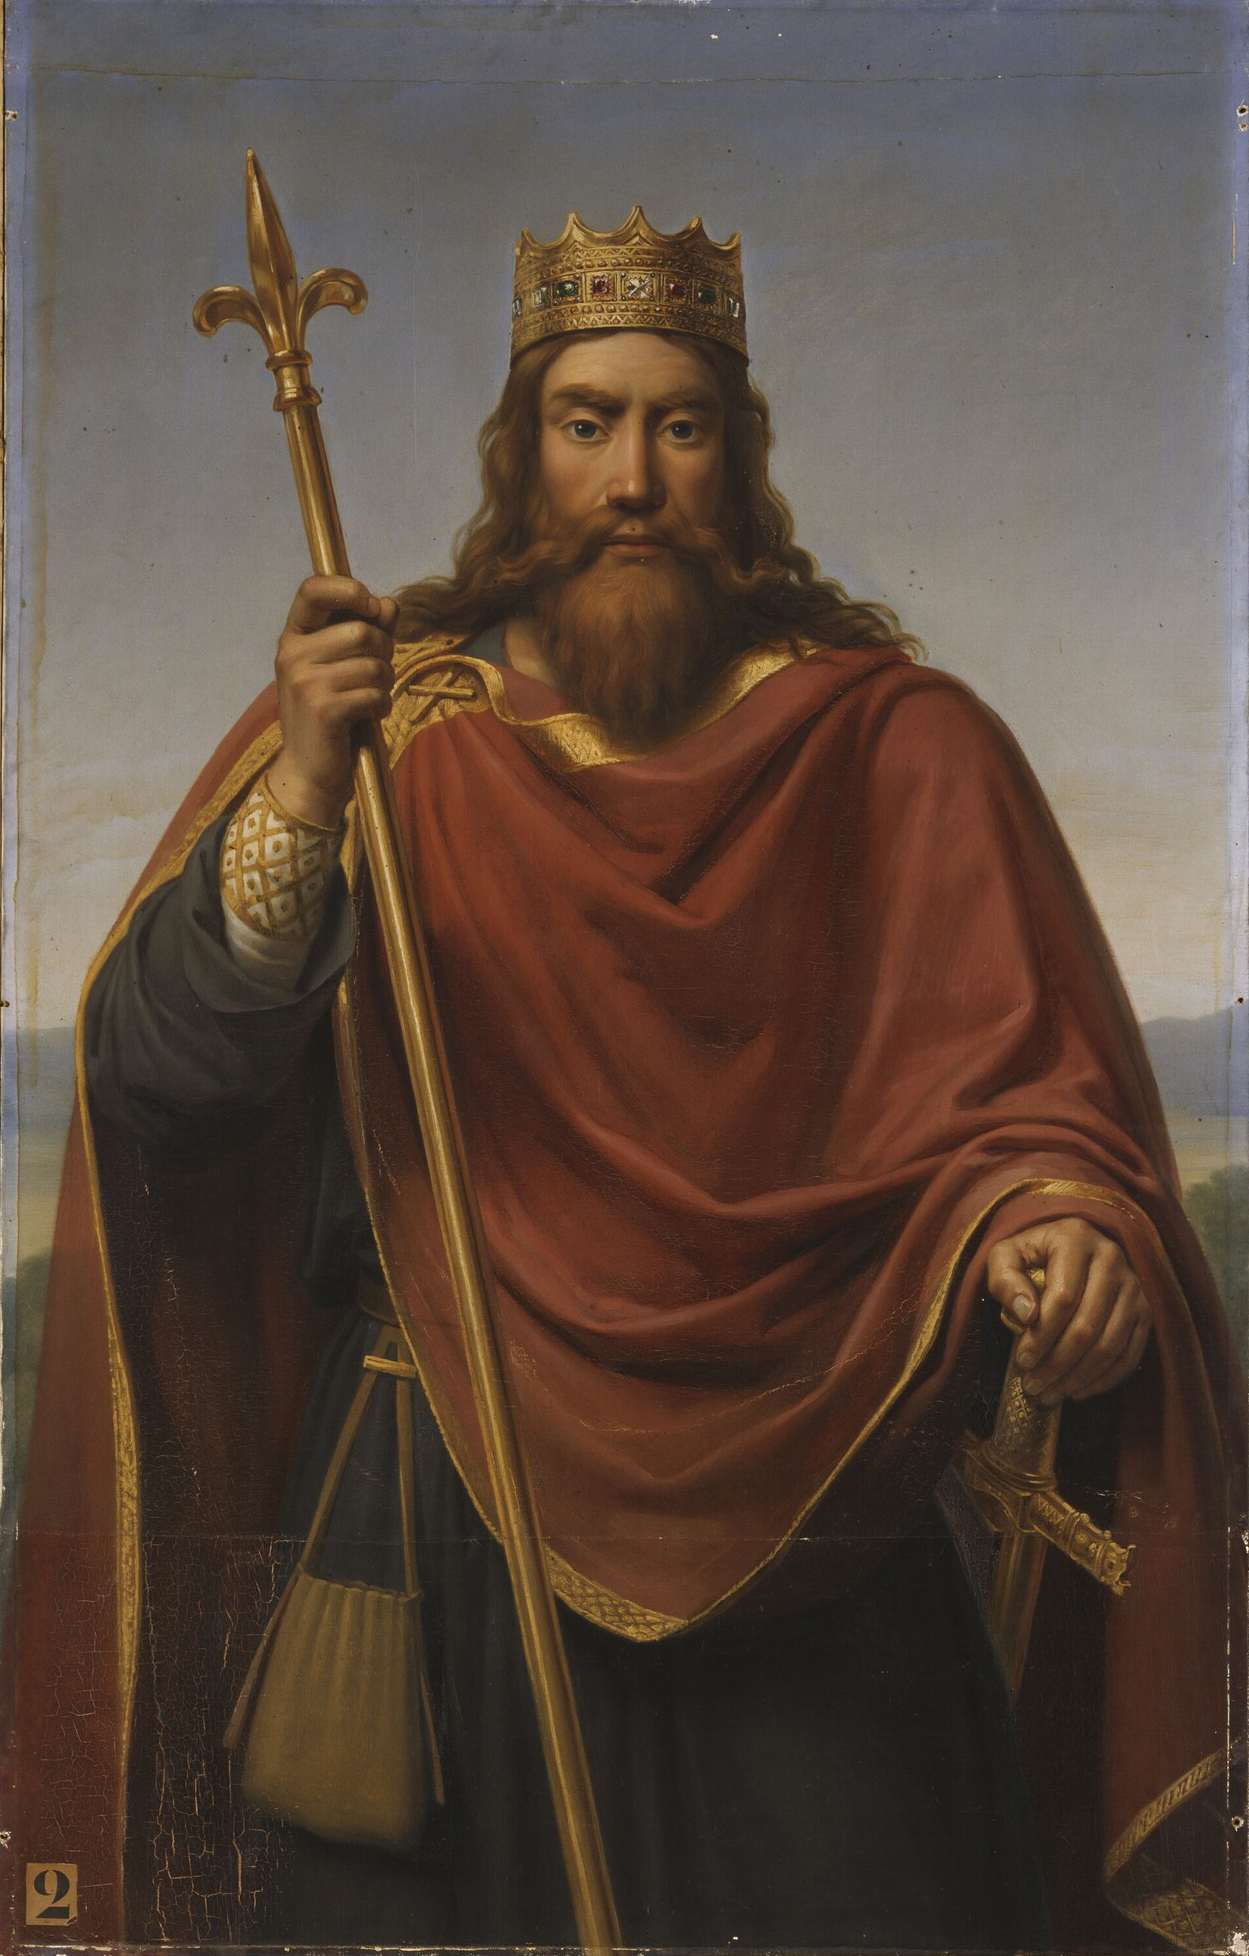 http://upload.wikimedia.org/wikipedia/commons/8/86/Fran%C3%A7ois-Louis_Dejuinne_(1786-1844)_-_Clovis_roi_des_Francs_(465-511).jpg